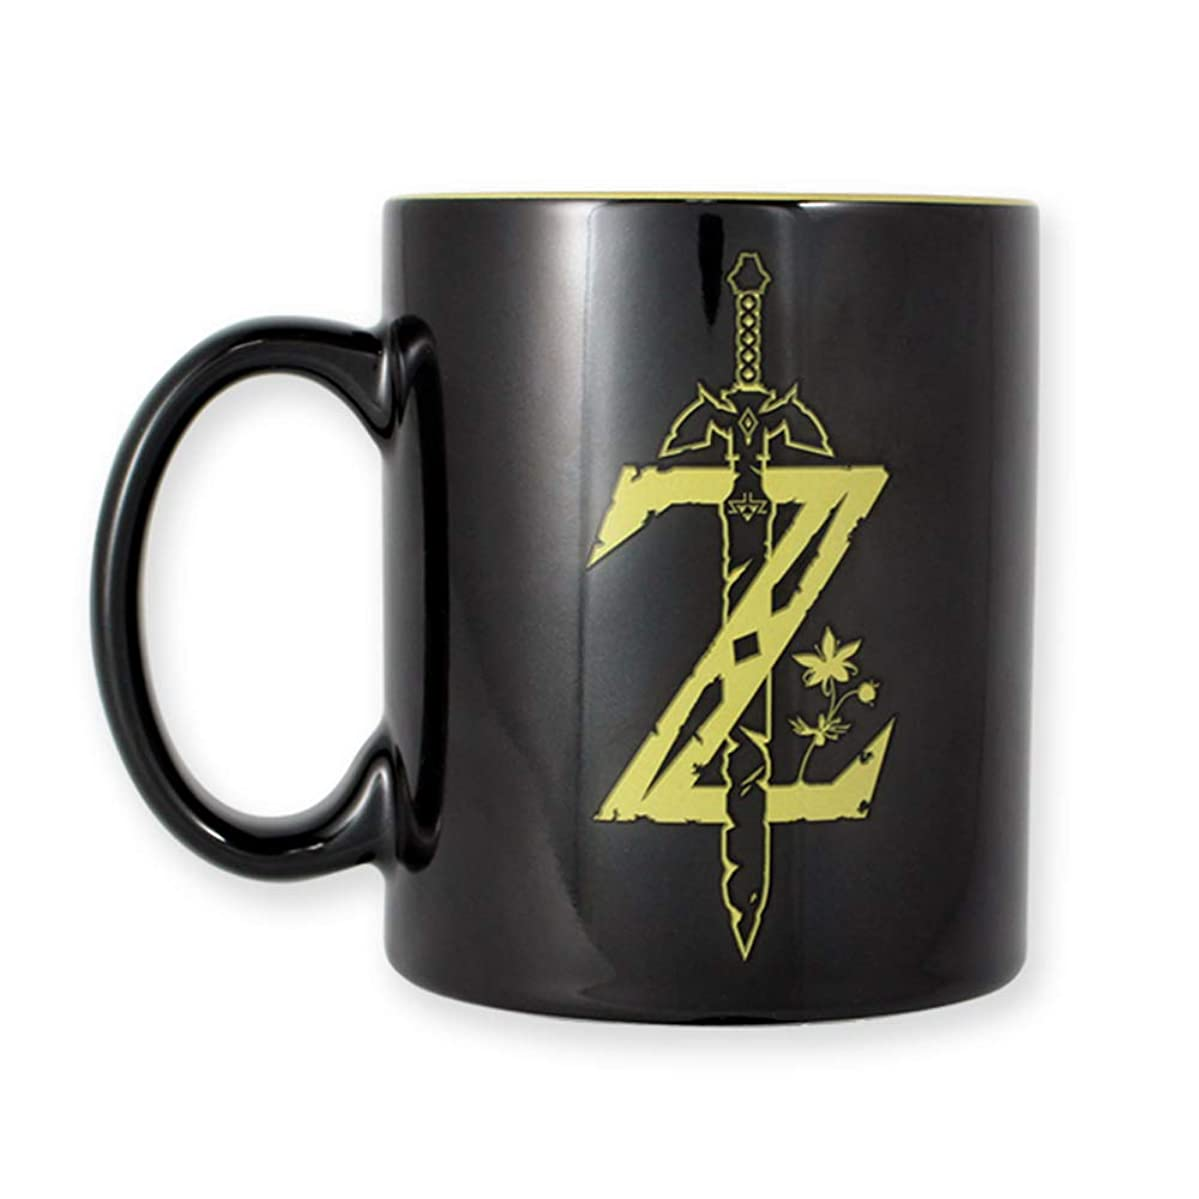 JUST FUNKY The Legend of Zelda (LOZ), Black Ceramic Coffee Mug, with Two Tone Colored Artwork and Inside Printing, 16 oz